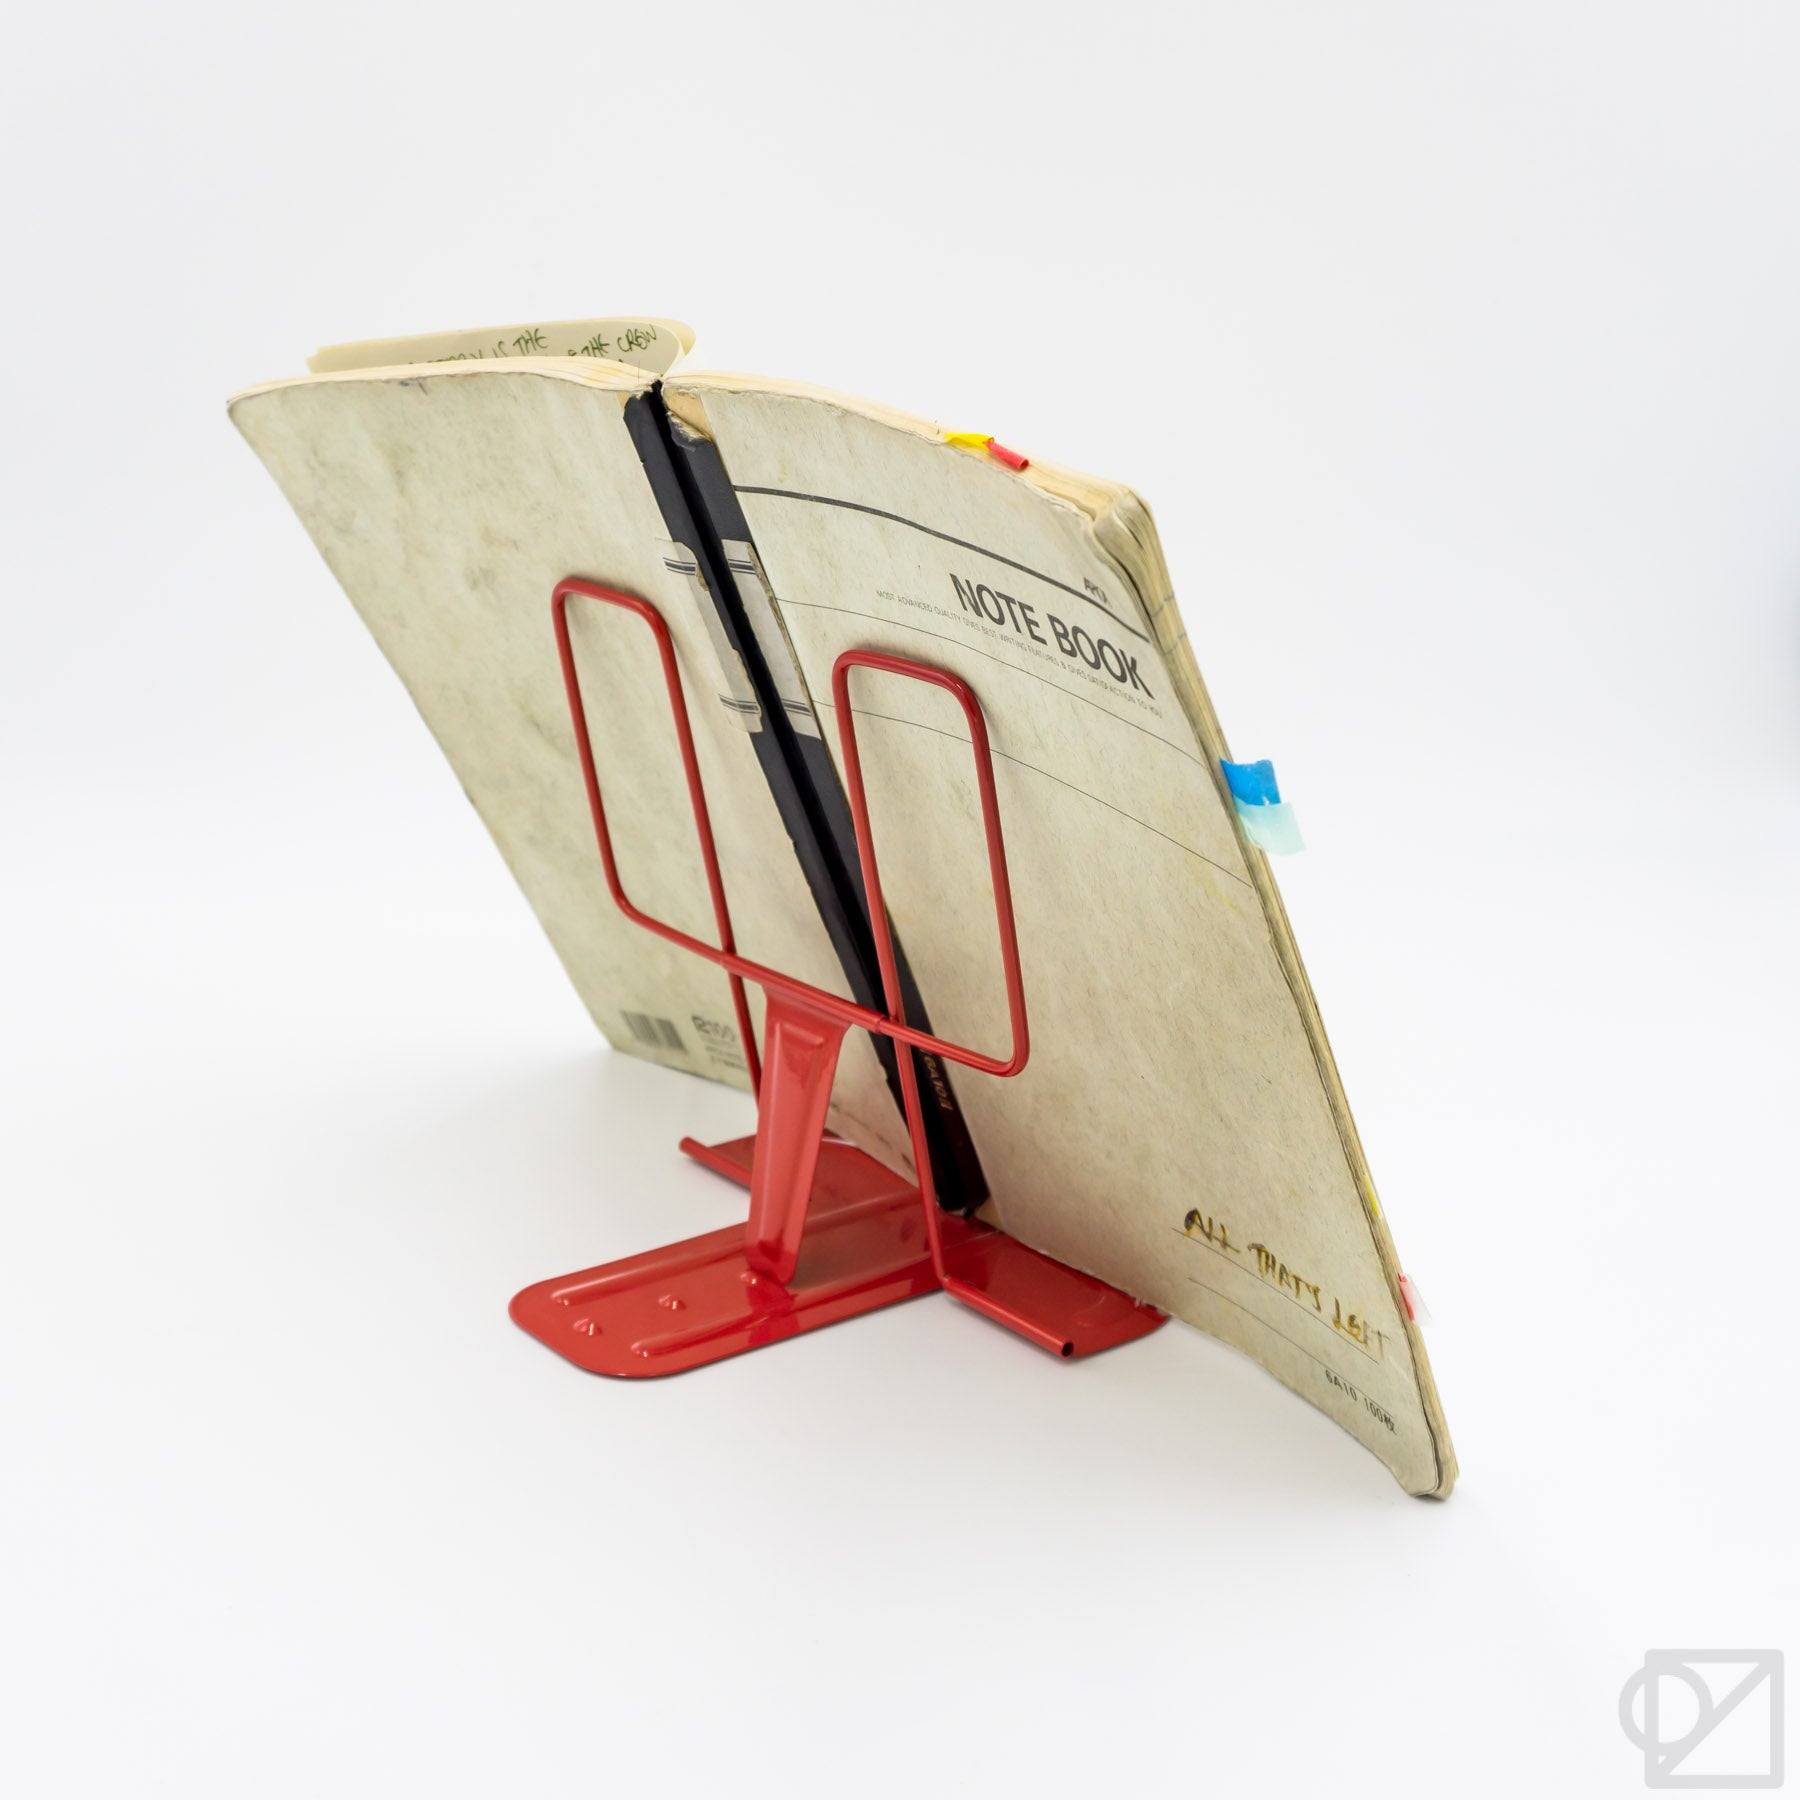 HIGHTIDE Metal Book Stand